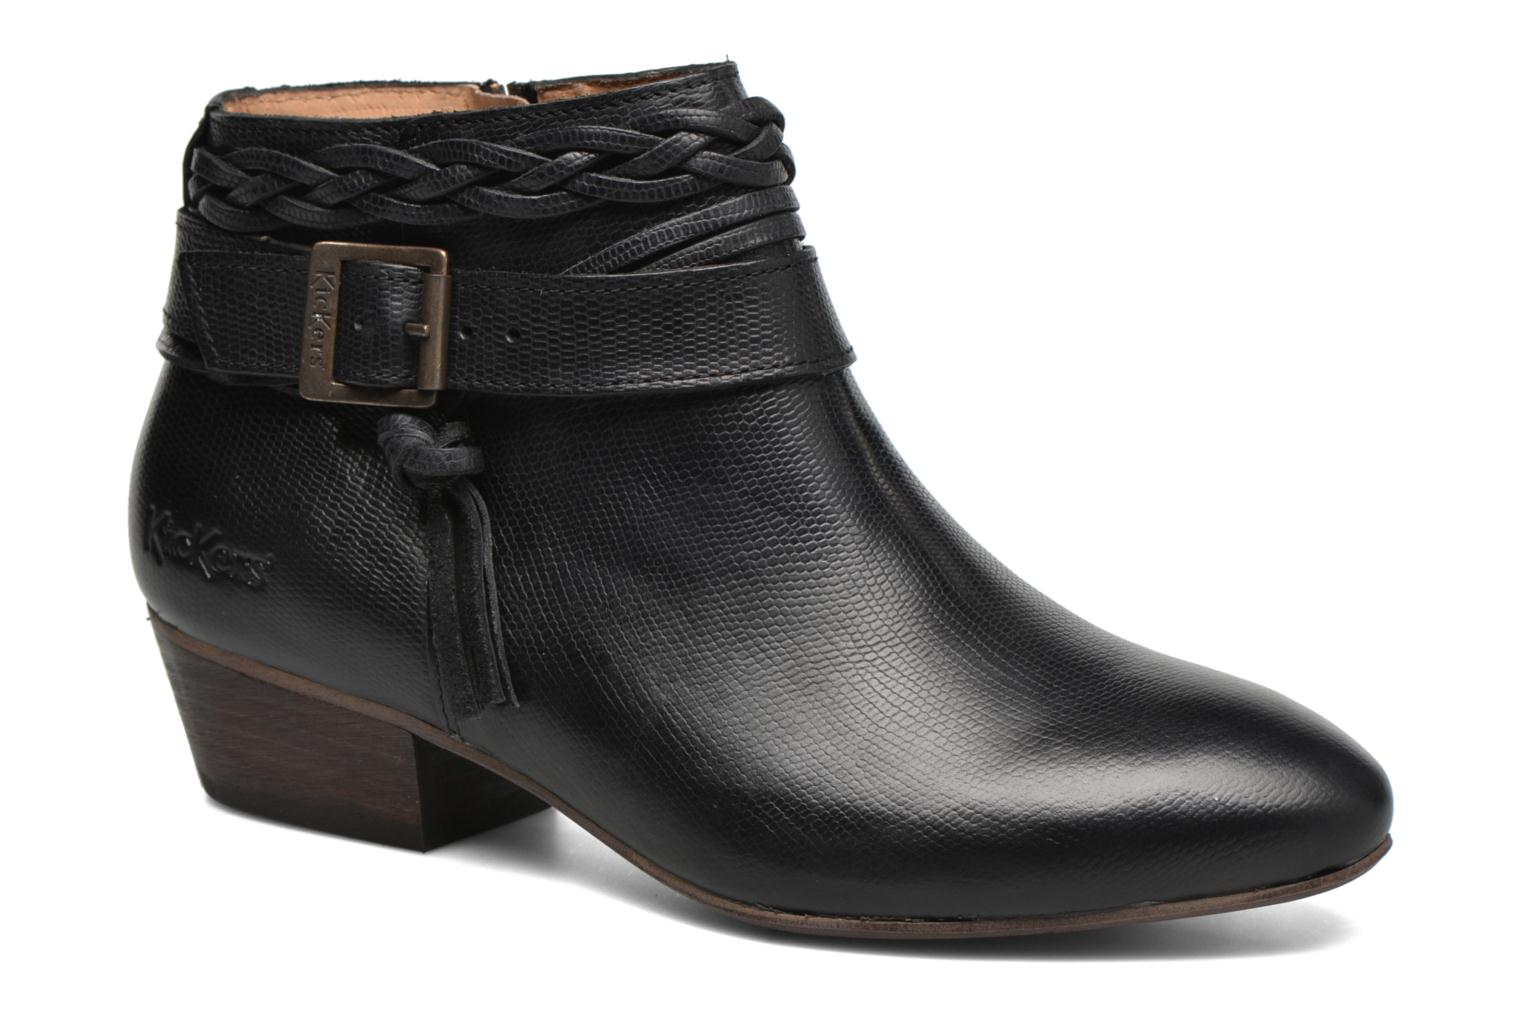 Westboots Noir